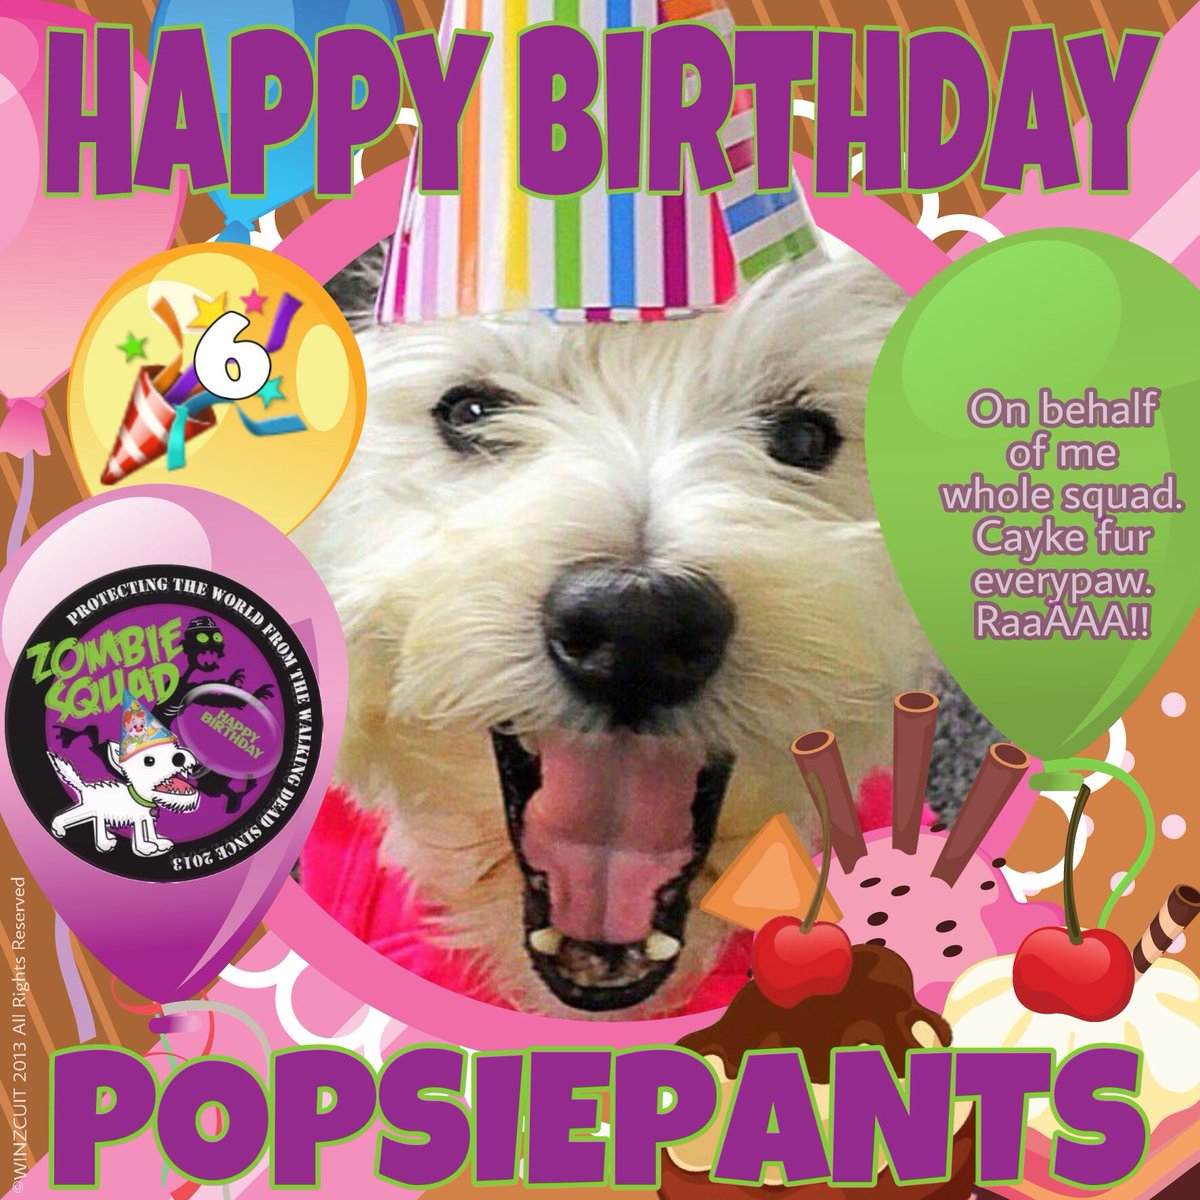 🎂Wishing a very 🎁HAPPY 6th BIRTHDAY🎉 to our pawsome pal, POPSIEPANTS from Leada Billy & your ZombieSquad pals. We hope your special day is full of tasty treats, belly rubs & cayke, soldyer. RaaAAA!! 💜🎂🎁🎈🎉 @popsiepants @ZombieSquadHQ #ZSHQ https://t.co/xfuKGH8sKg